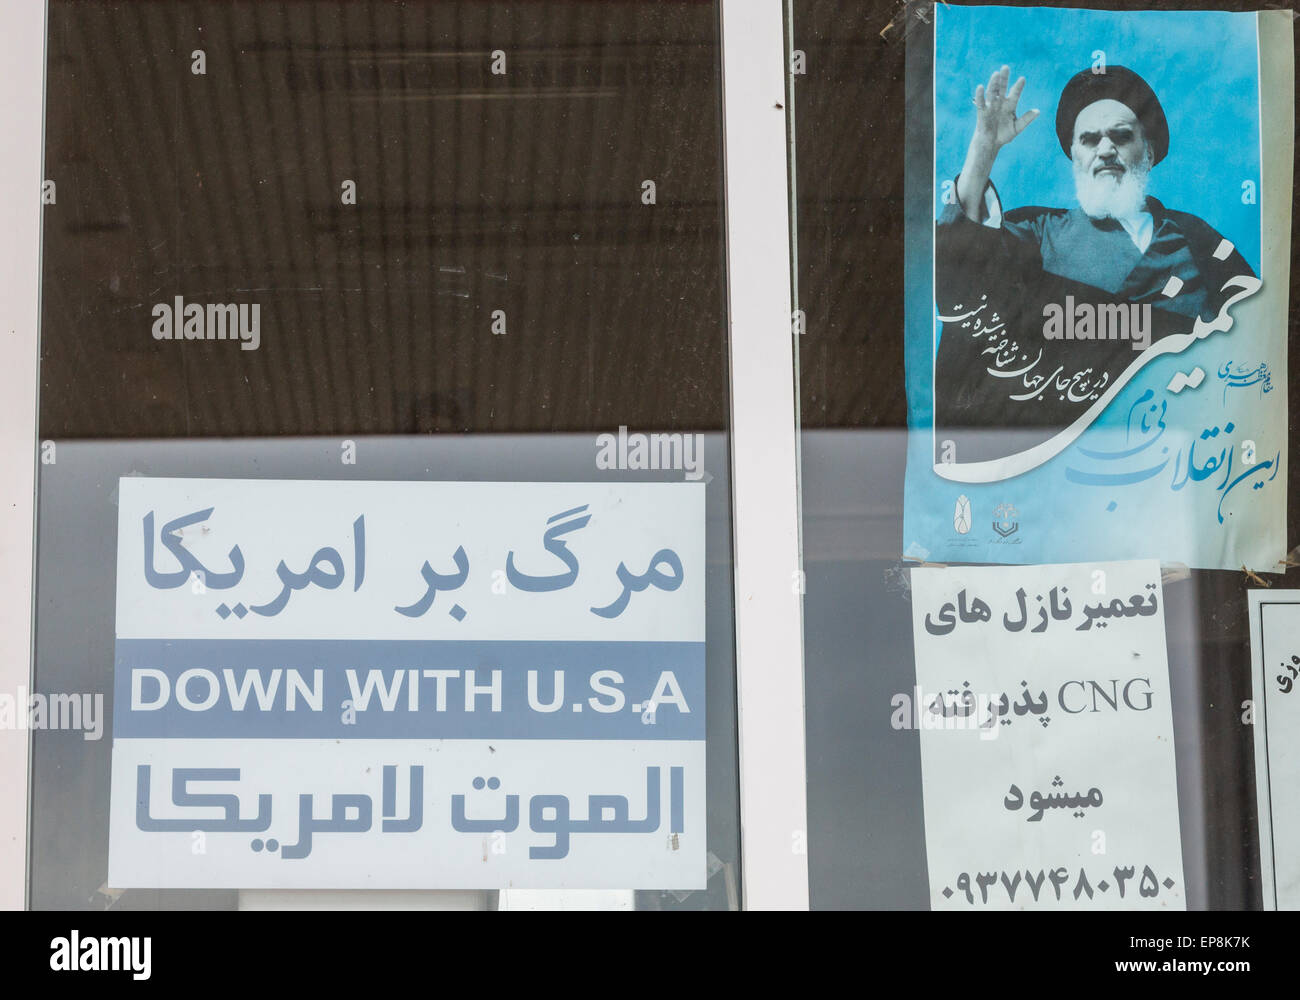 Down with U.S.A. sign in window, Mahan, Iran - Stock Image